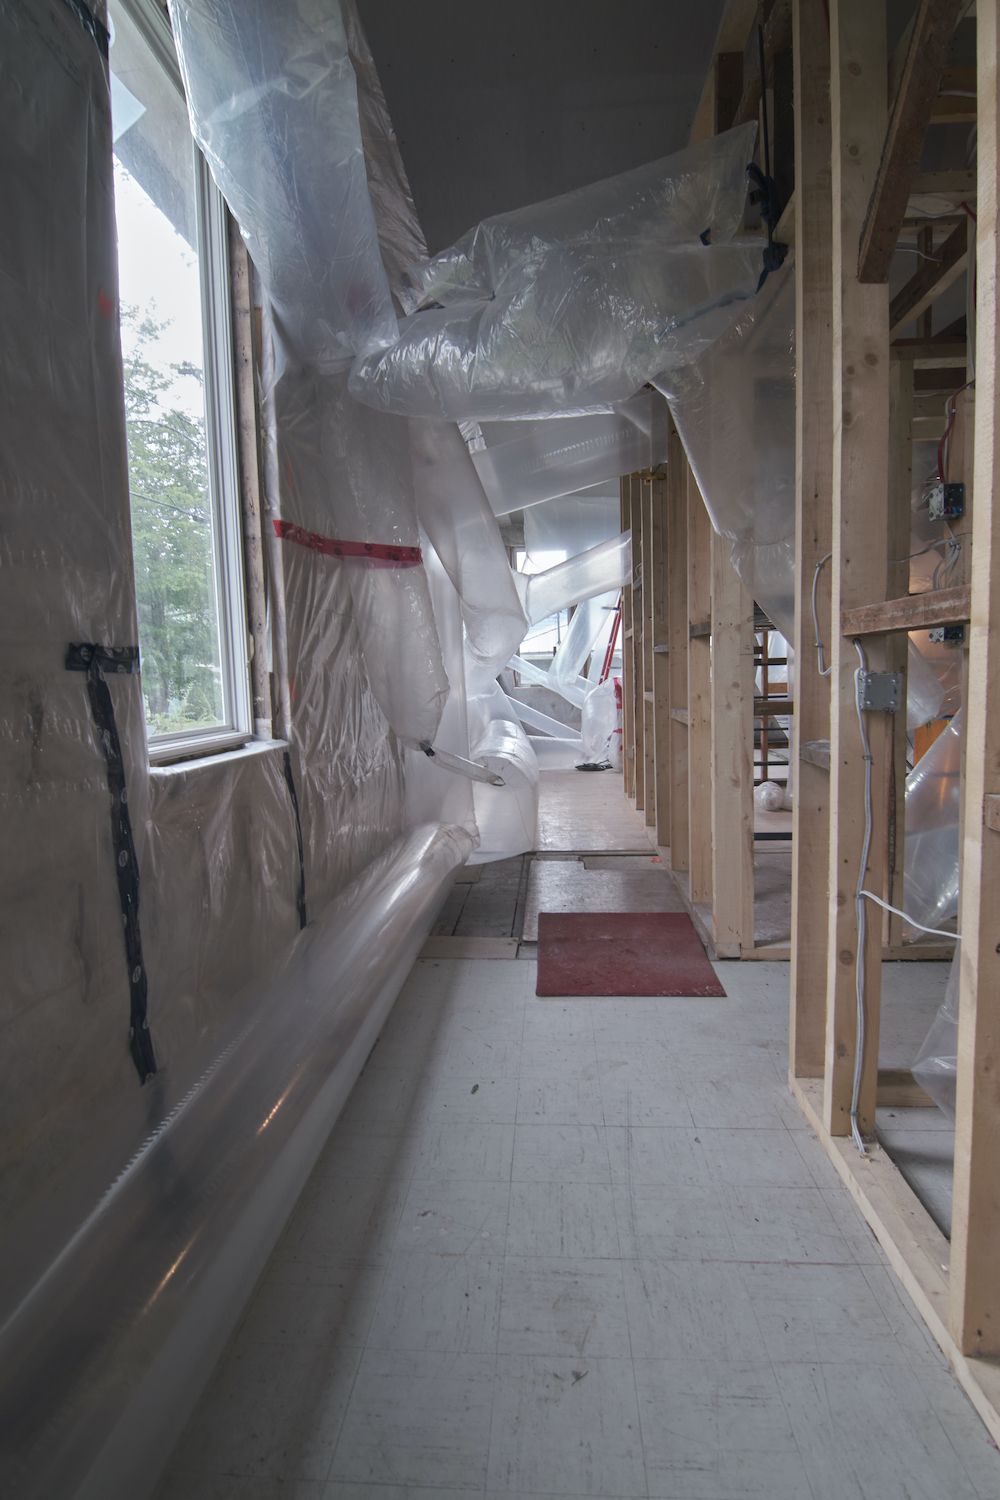 Looking down a hallway, inflated transparent plastic tubes jut out from bare stud walls. Daylight shines in the windows on the left hand side of the hall.